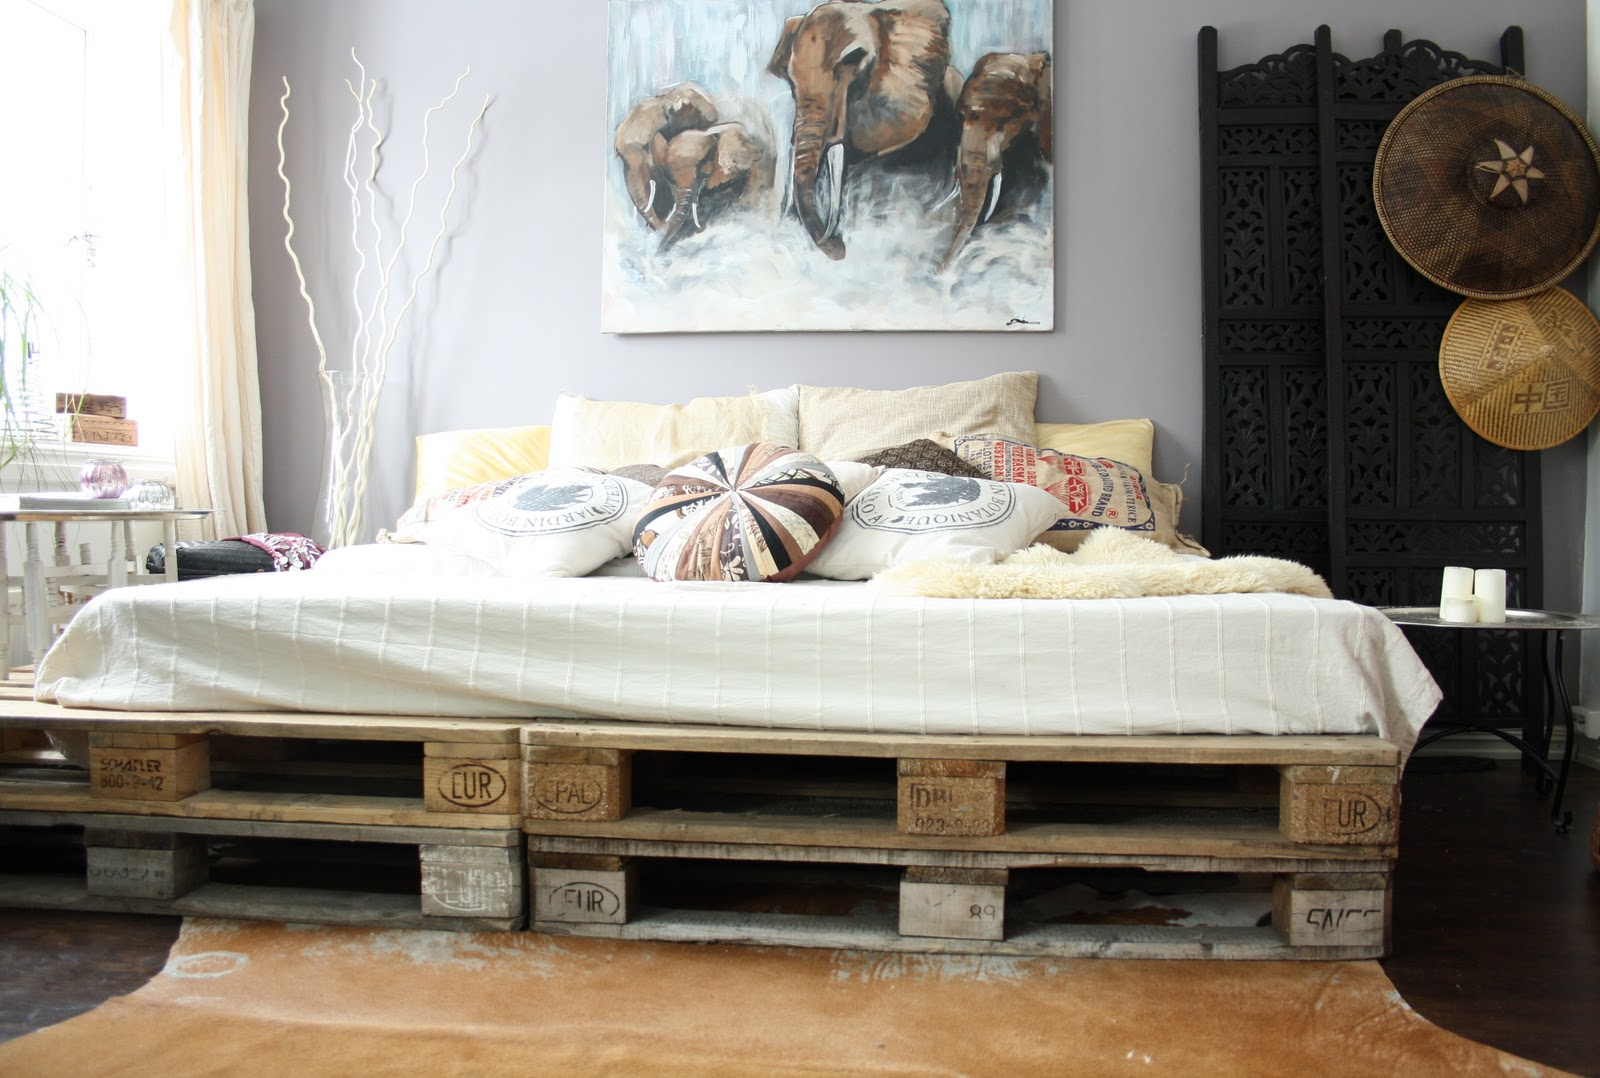 21 DIY Bed Frames To Give Yourself The Restful Spot of Your Dreams!